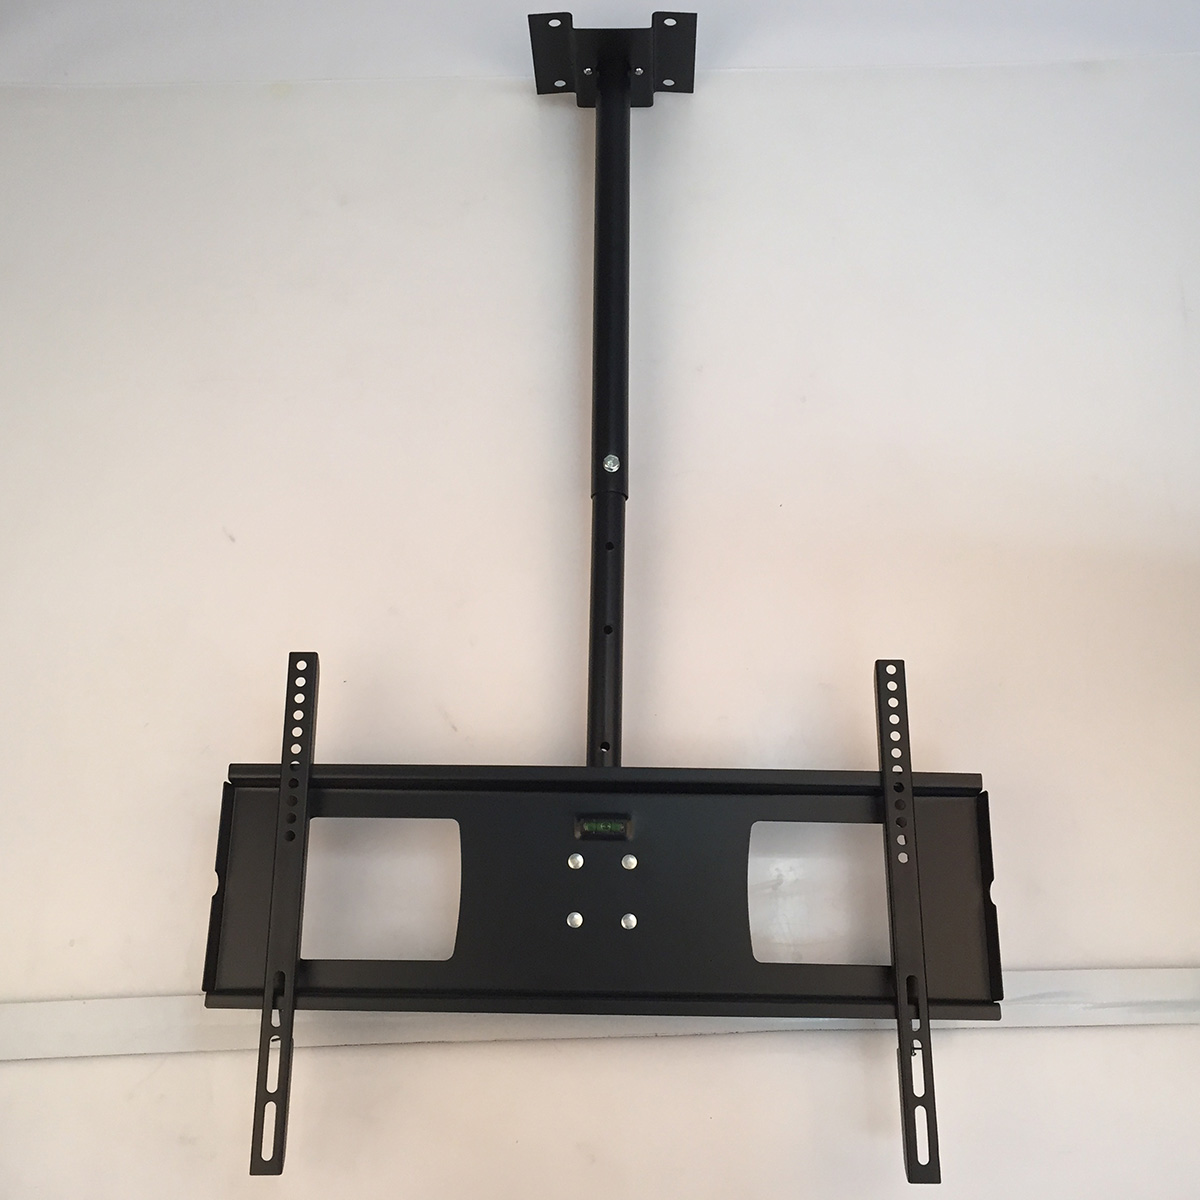 Lcd Ceiling Mount: Swivel Ceiling TV Mount LED LCD 4K Hanging Pole Bracket 32